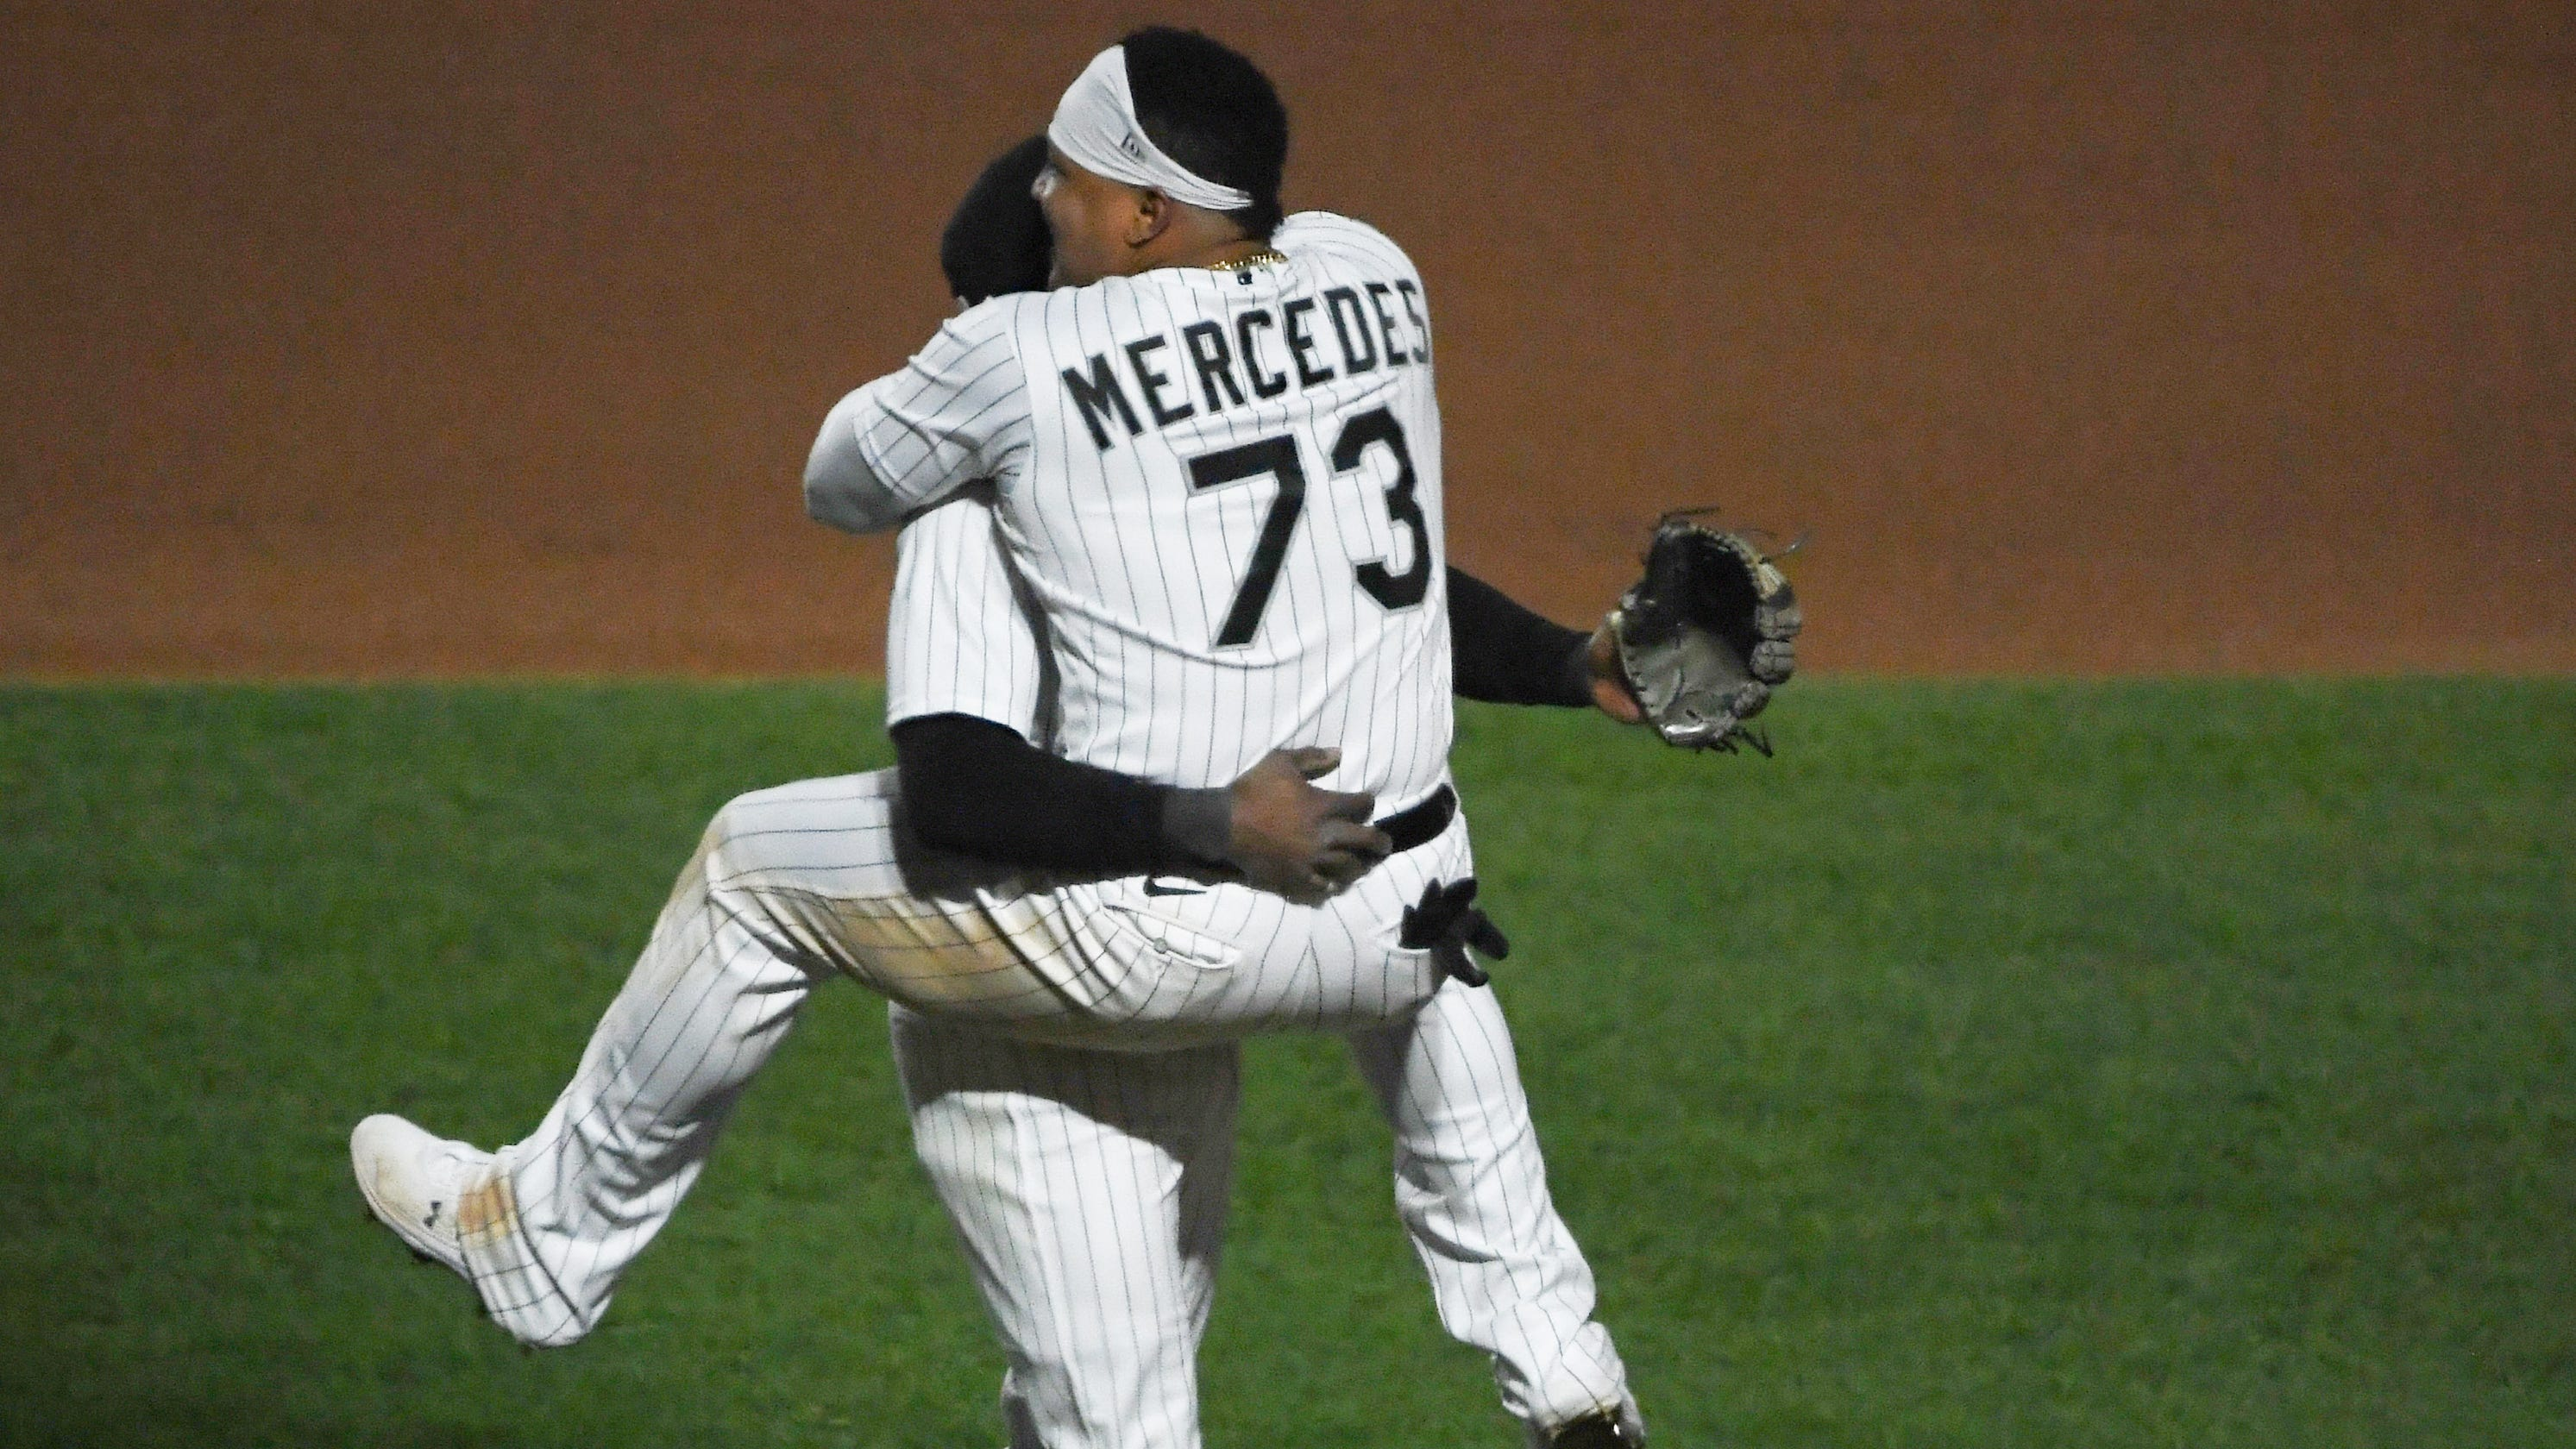 MLB power rankings: Red Sox stay on top, red-hot White Sox make a big jump